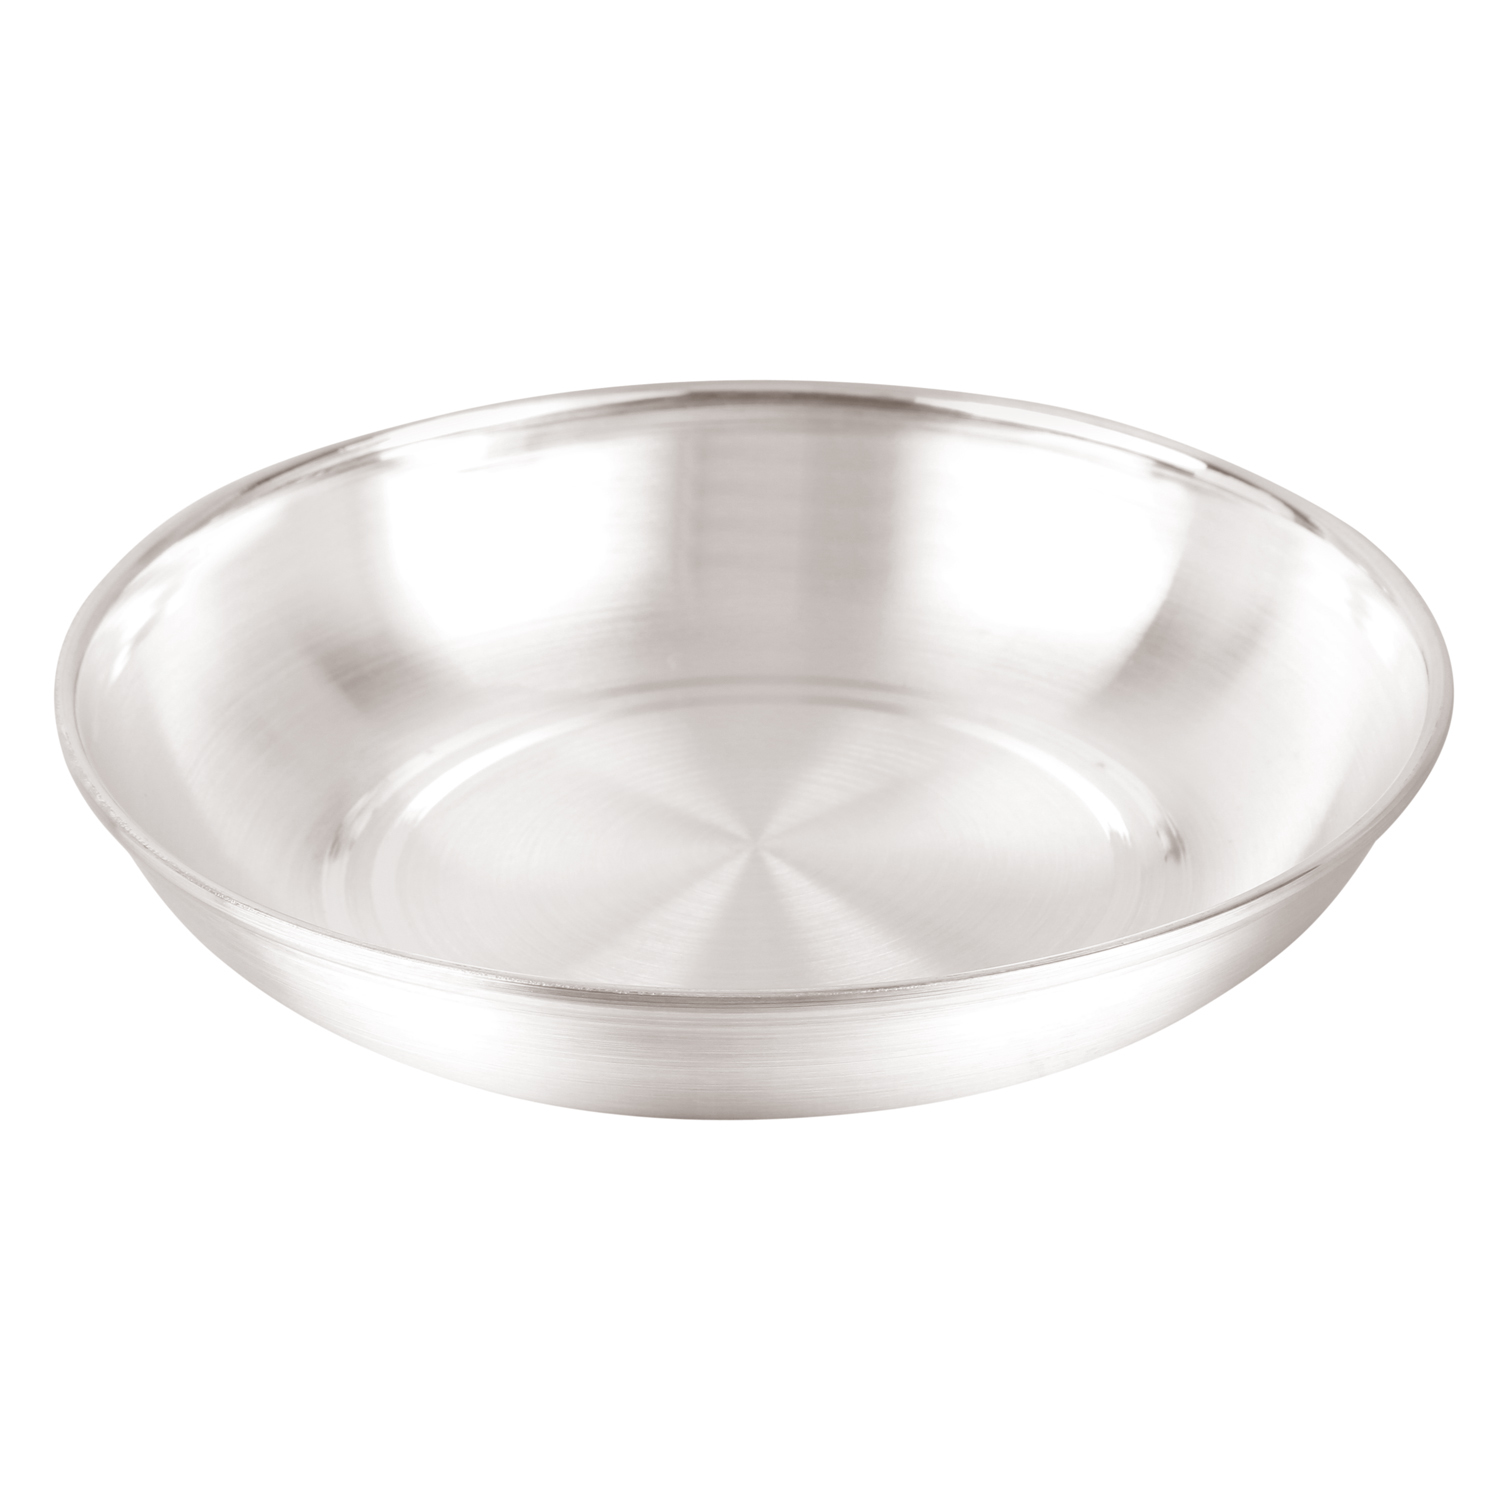 Osasbazaar Pure Silver Plate Small for Puja & Dessert - Main